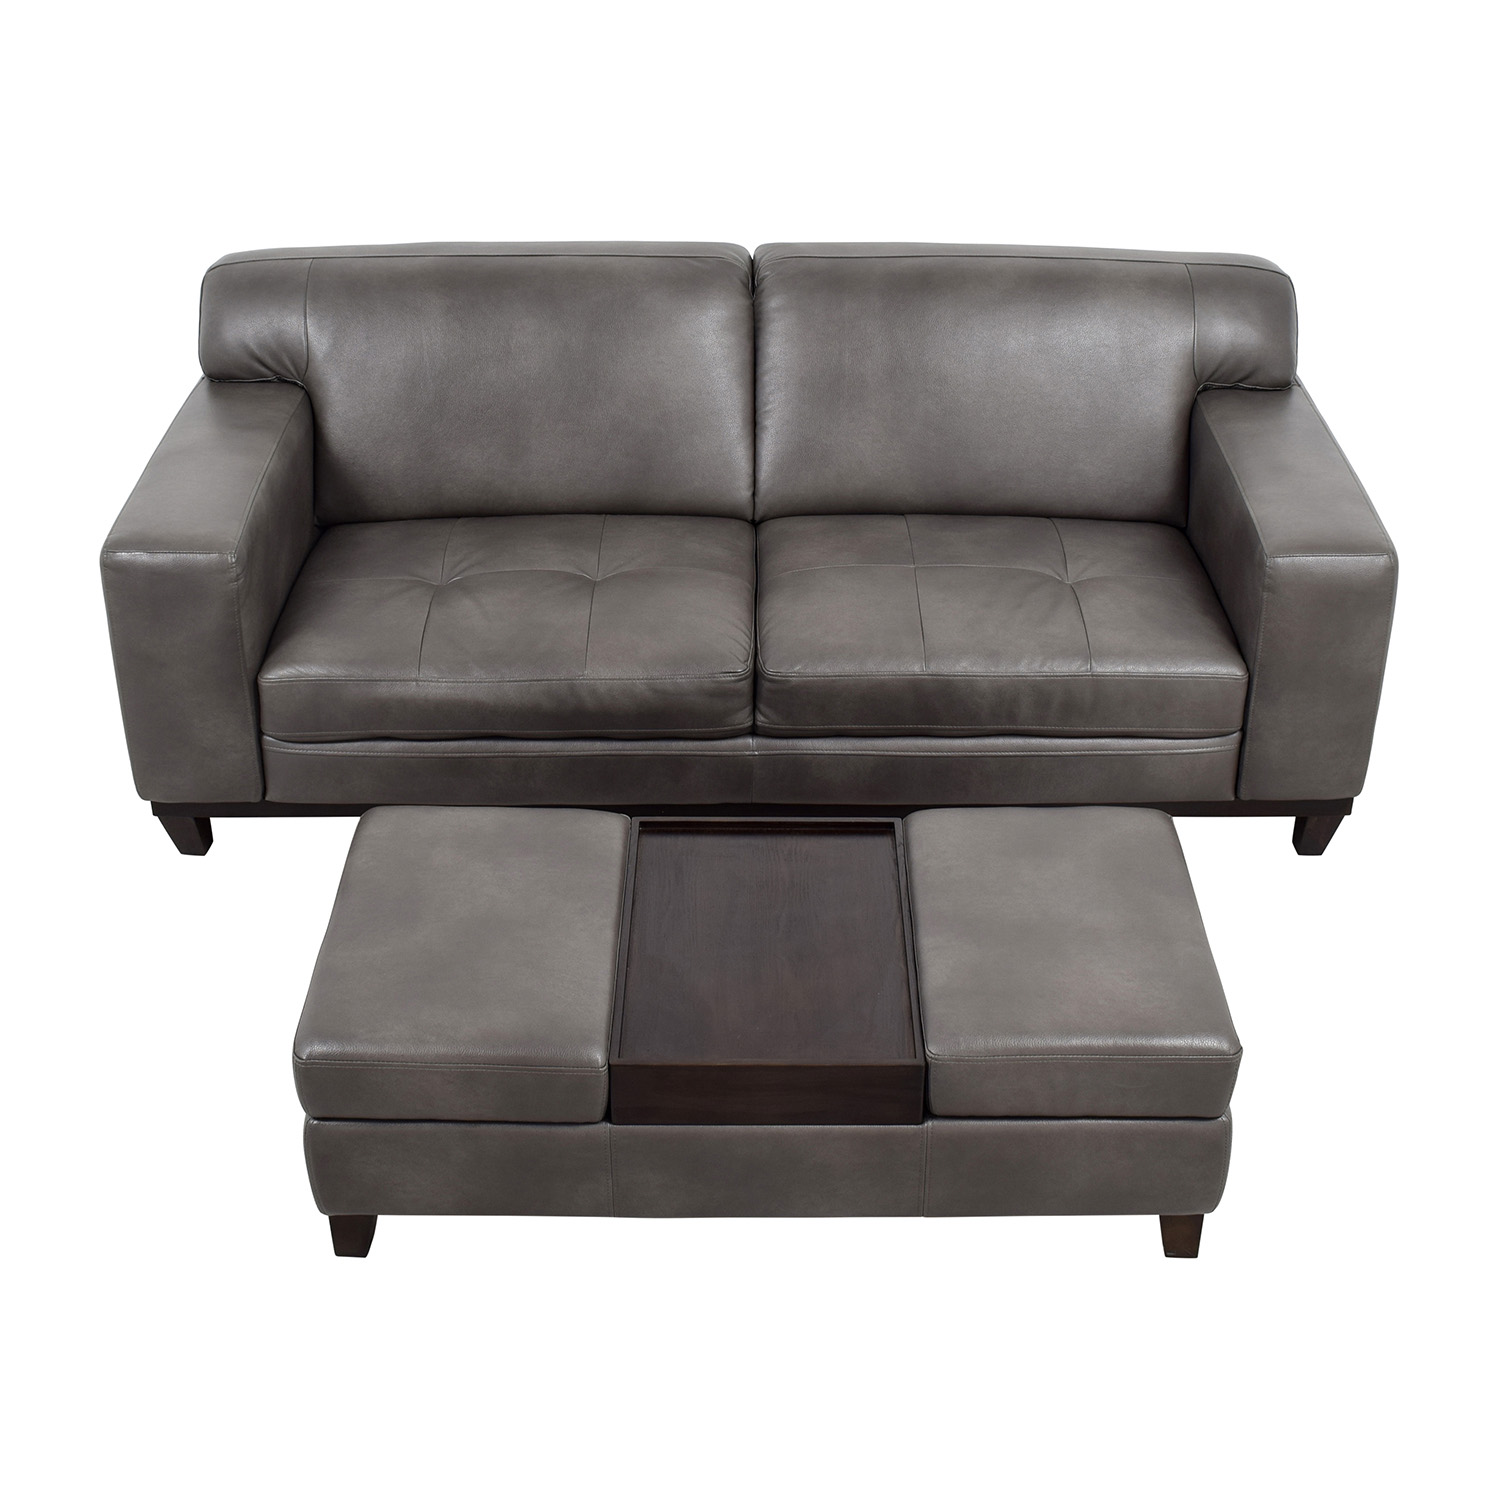 Beau ... Raymour U0026 Flanigan Grey Leather Couch With Storage Ottoman / Sofas ...